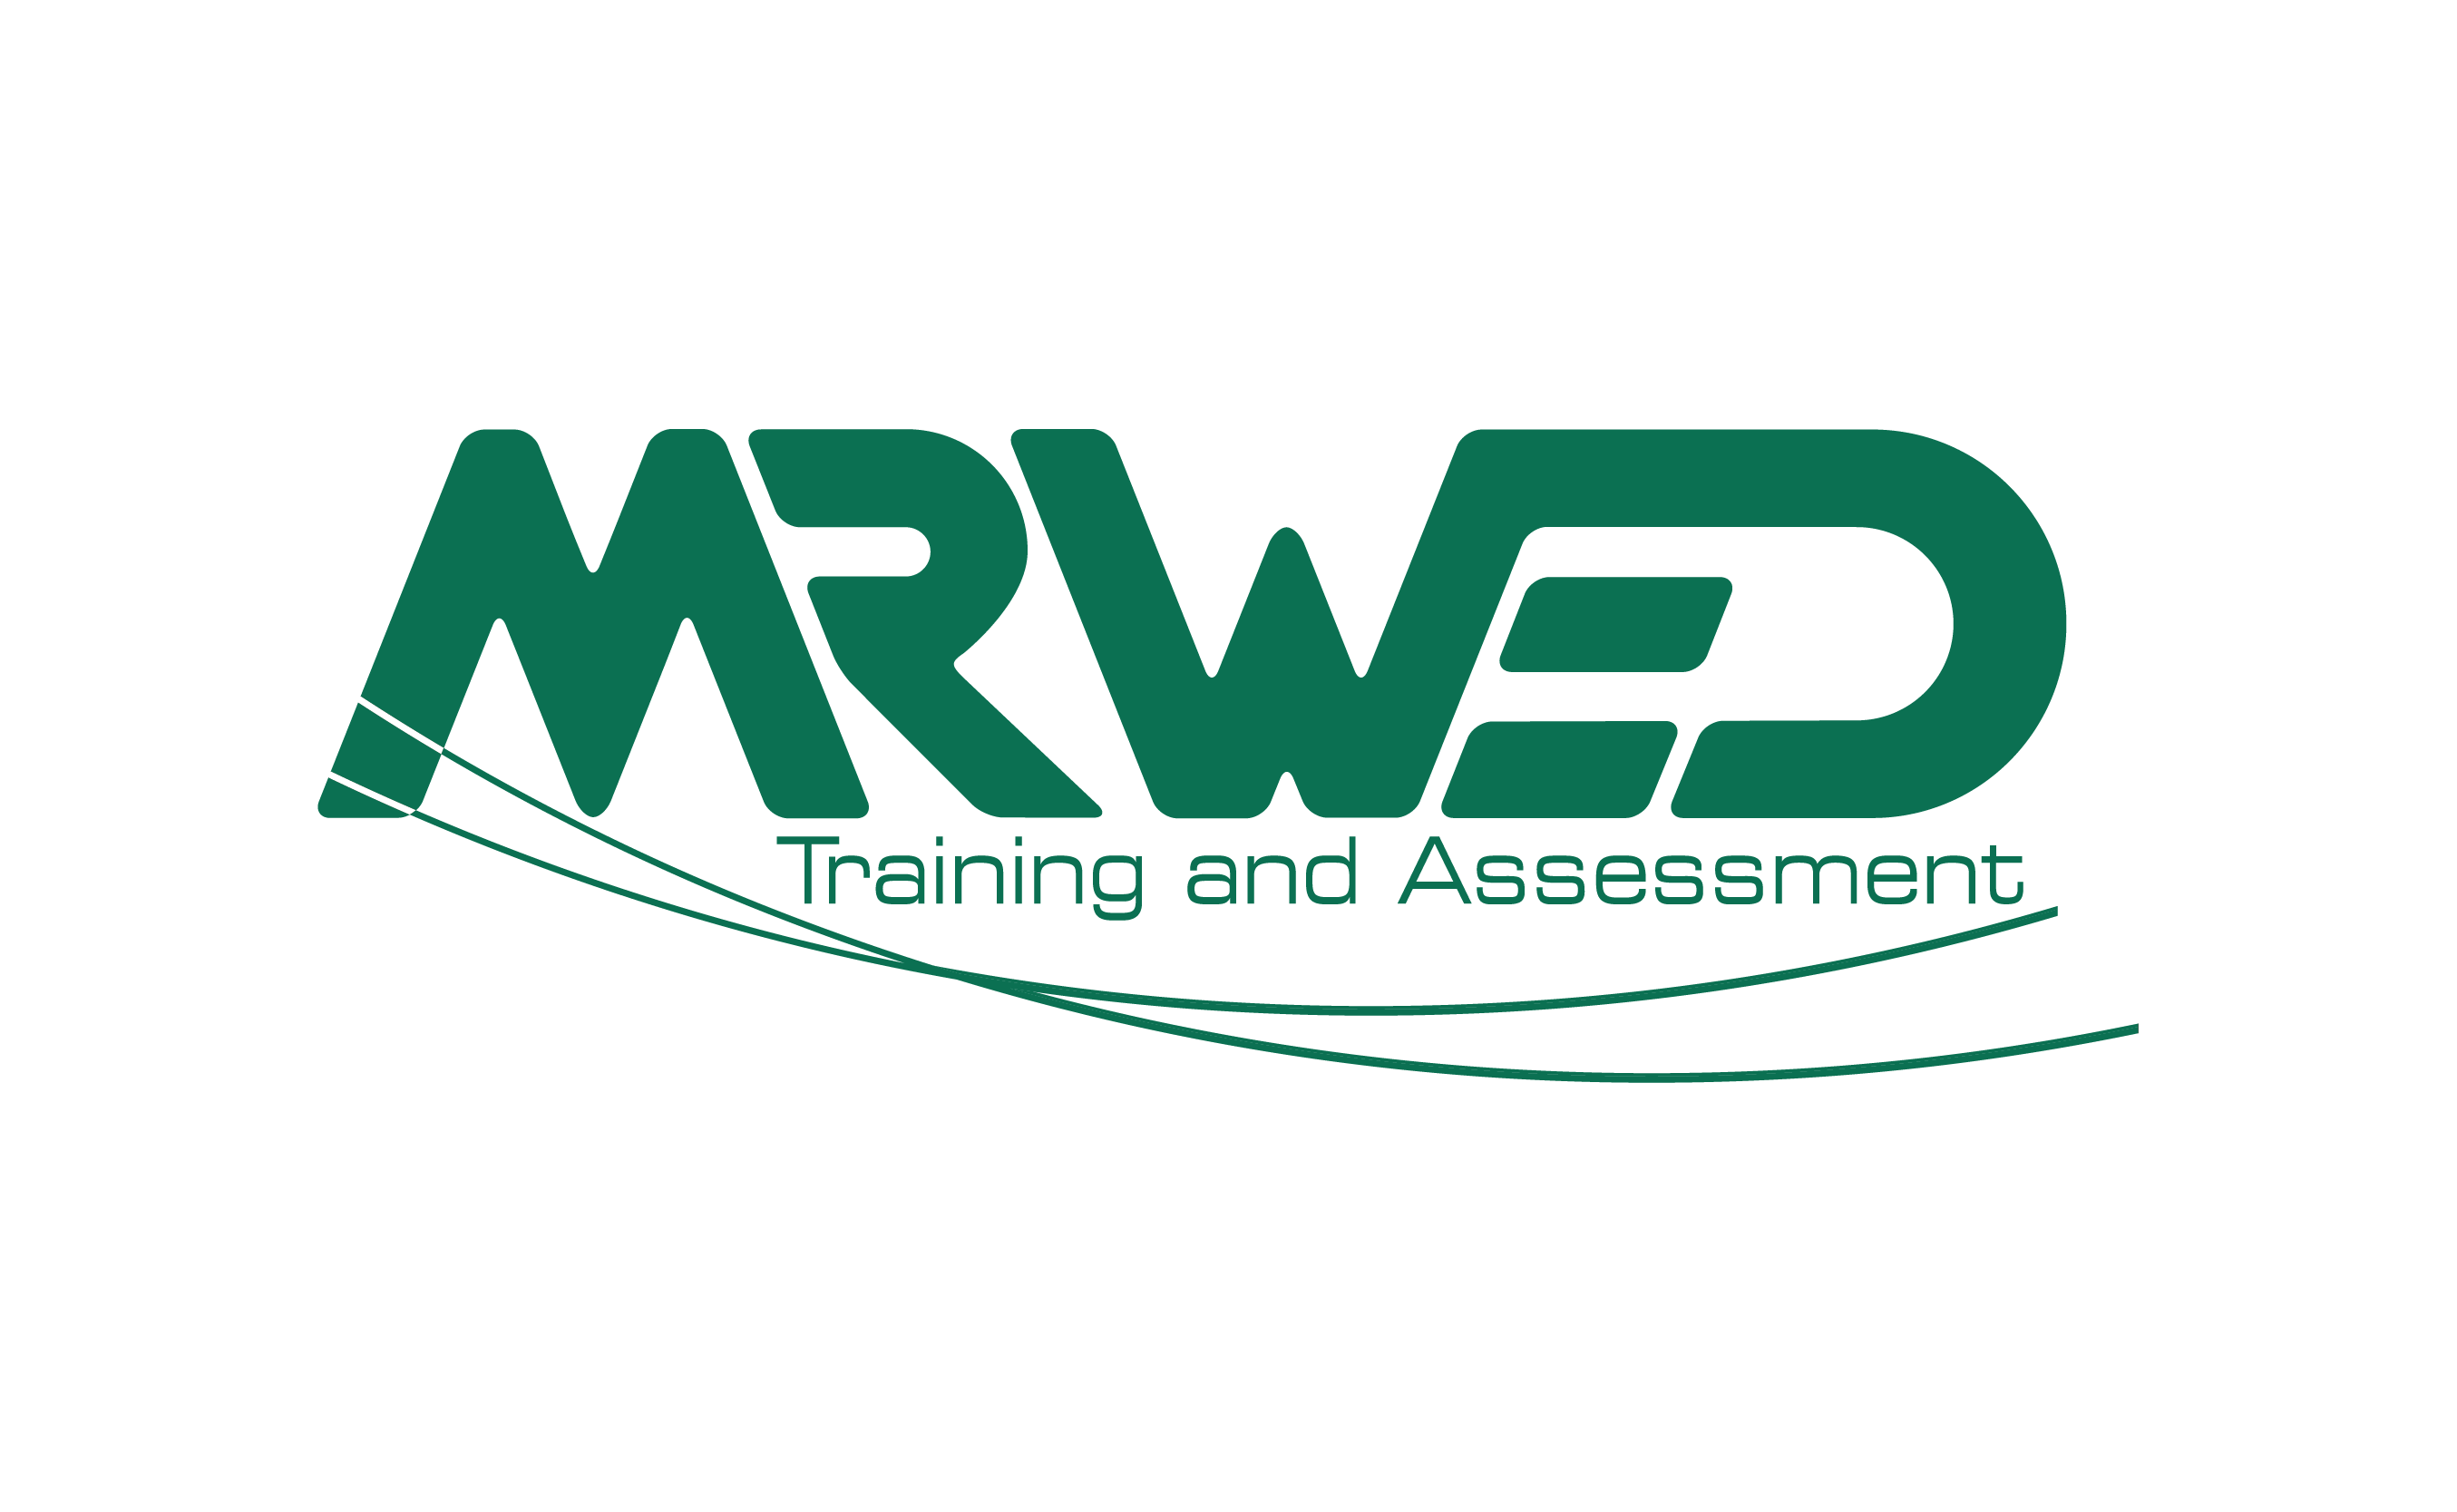 MRWED Training and Assessment